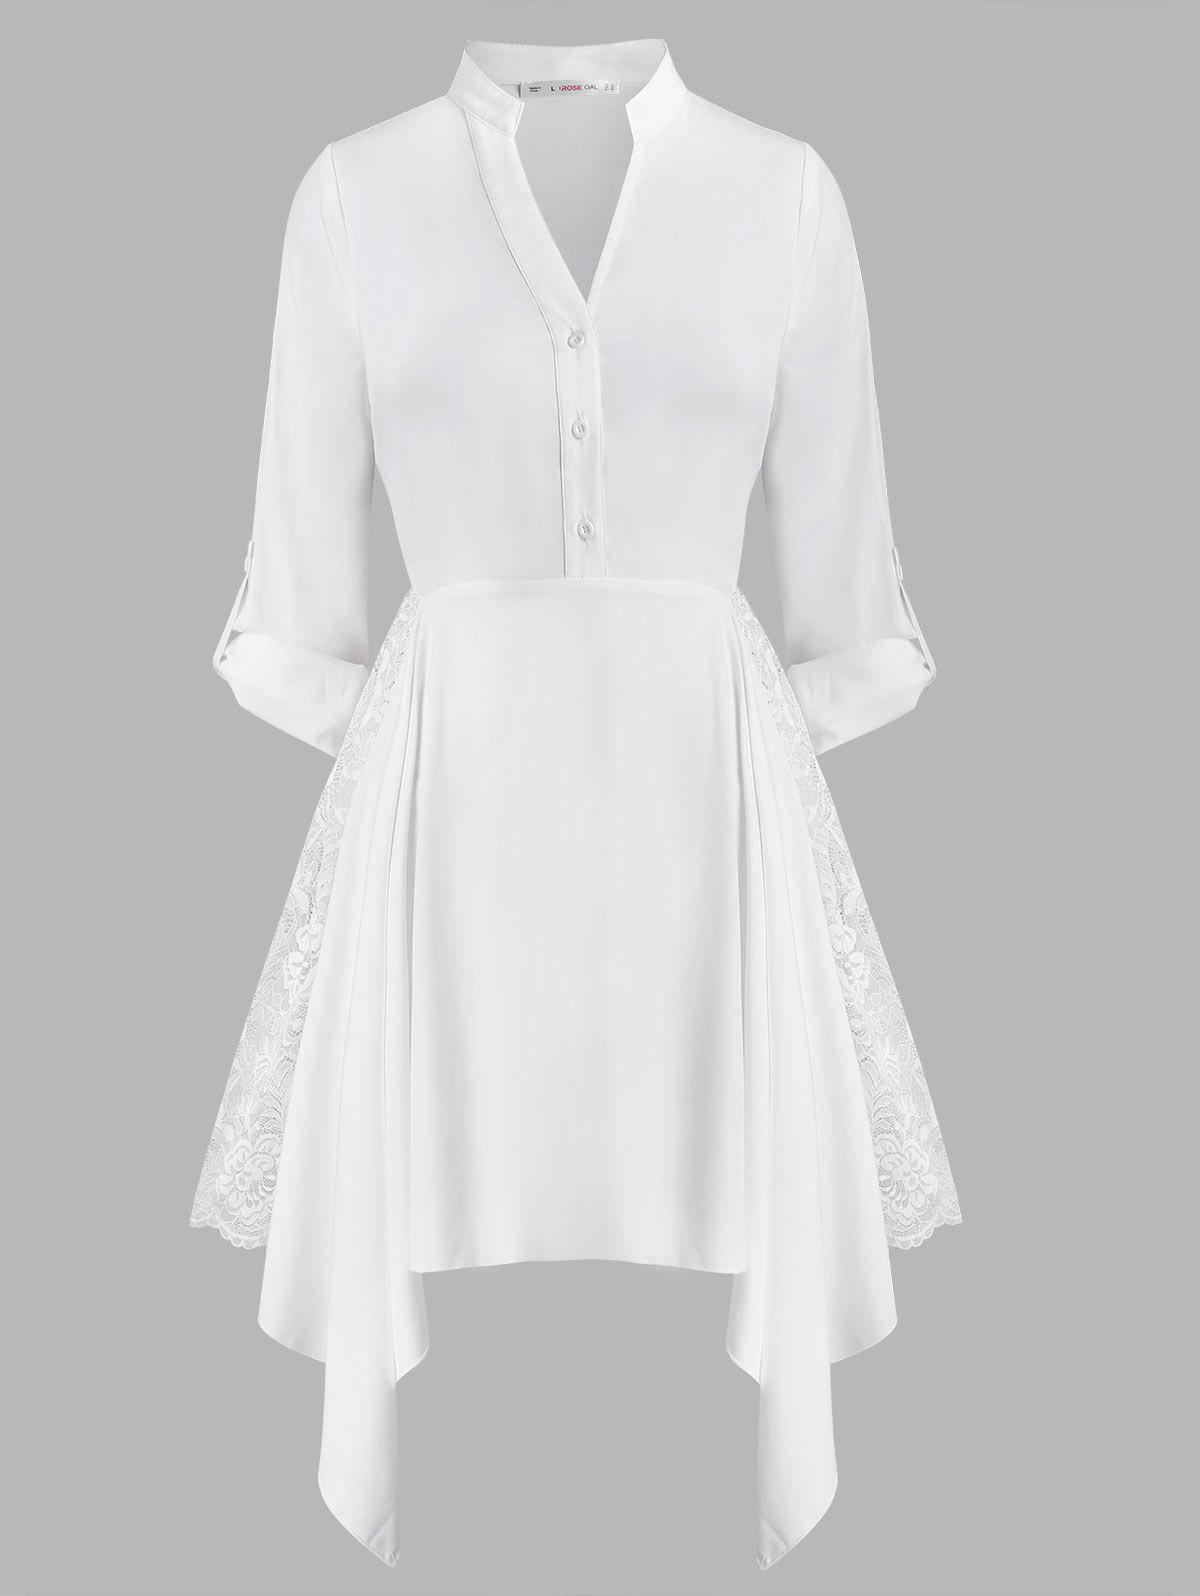 Lace Panel Button Front Handkerchief Plus Size Shirt Dress - WHITE 5X